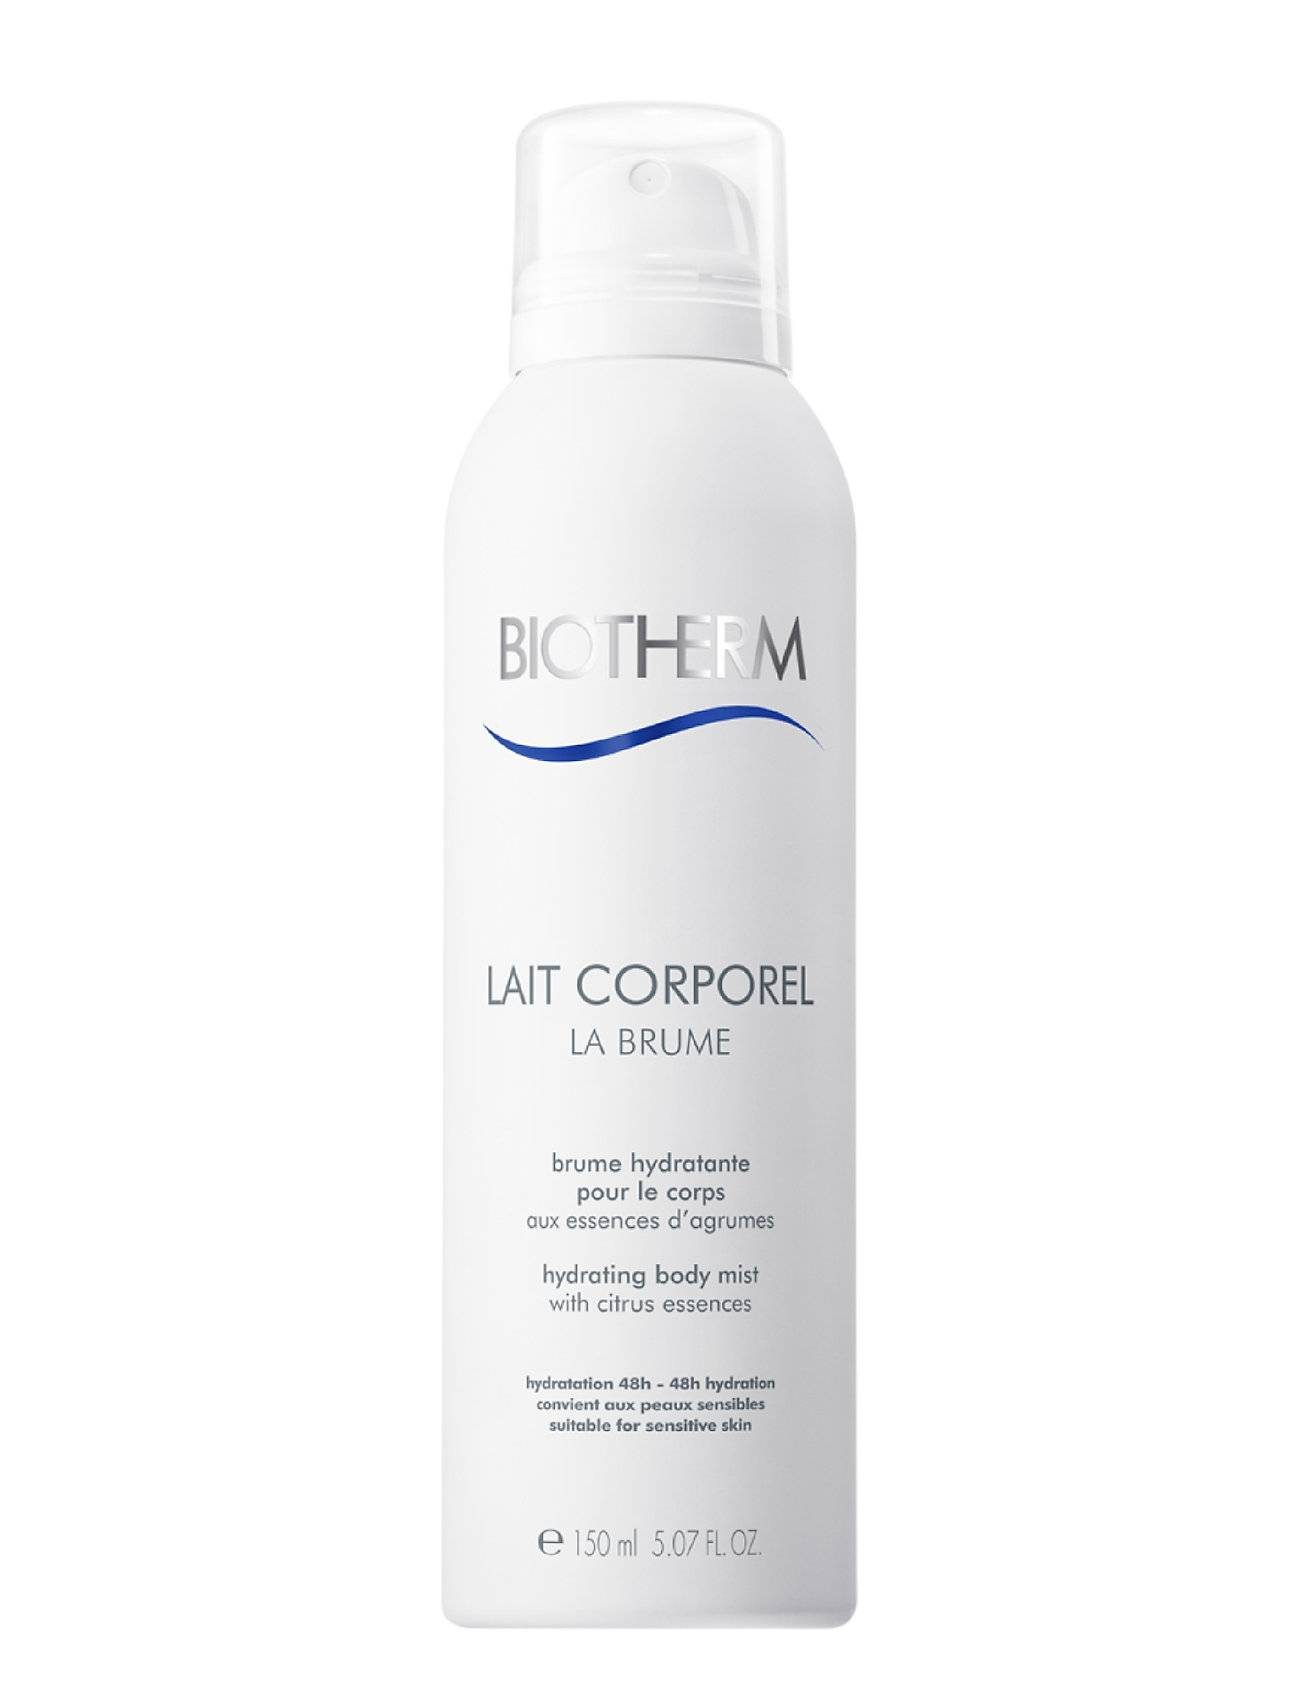 Biotherm Lait Corporel Brume 150ml Beauty WOMEN Skin Care Body Body Lotion Nude Biotherm